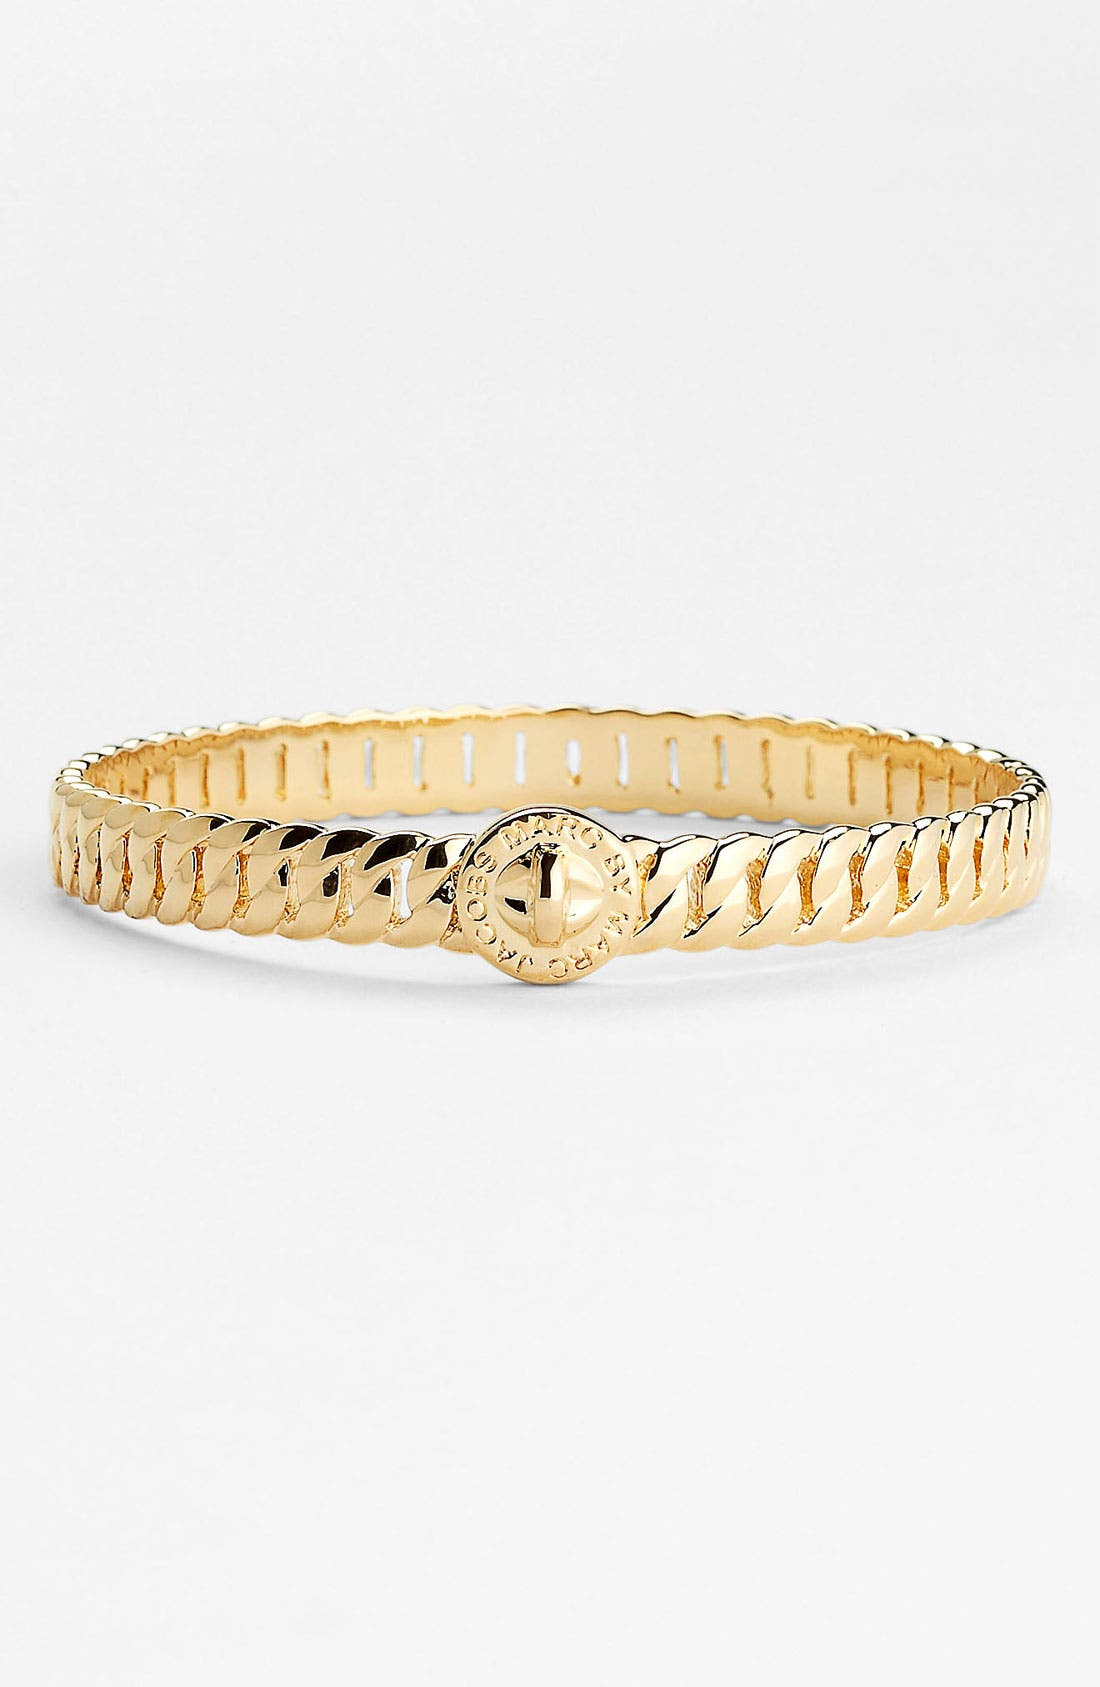 Main Image - MARC BY MARC JACOBS 'Toggles & Turnlocks' Bangle